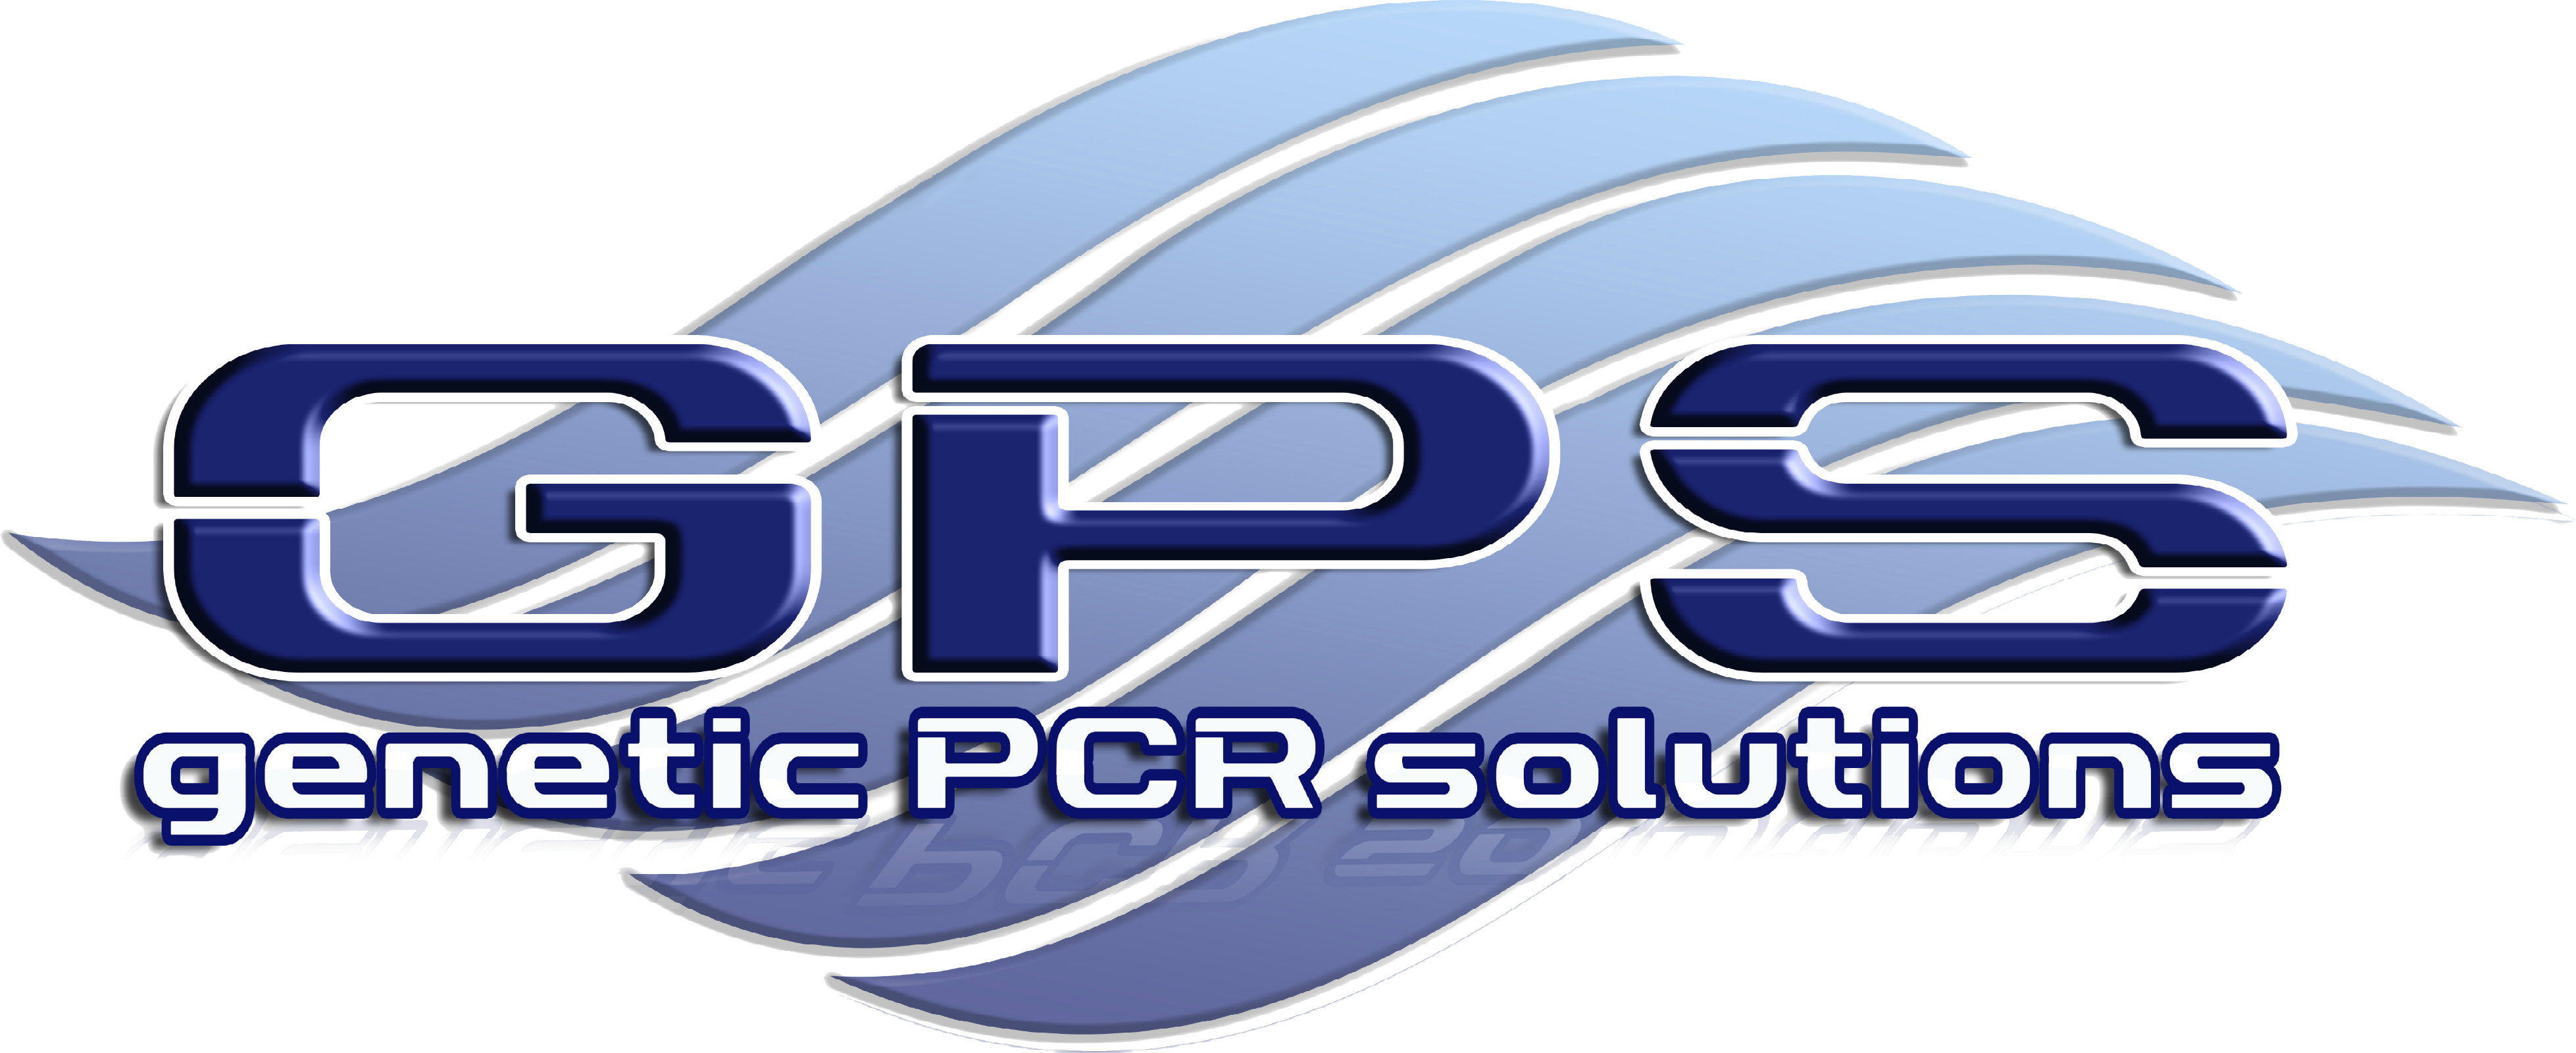 Genetic PCR Solutions GPS